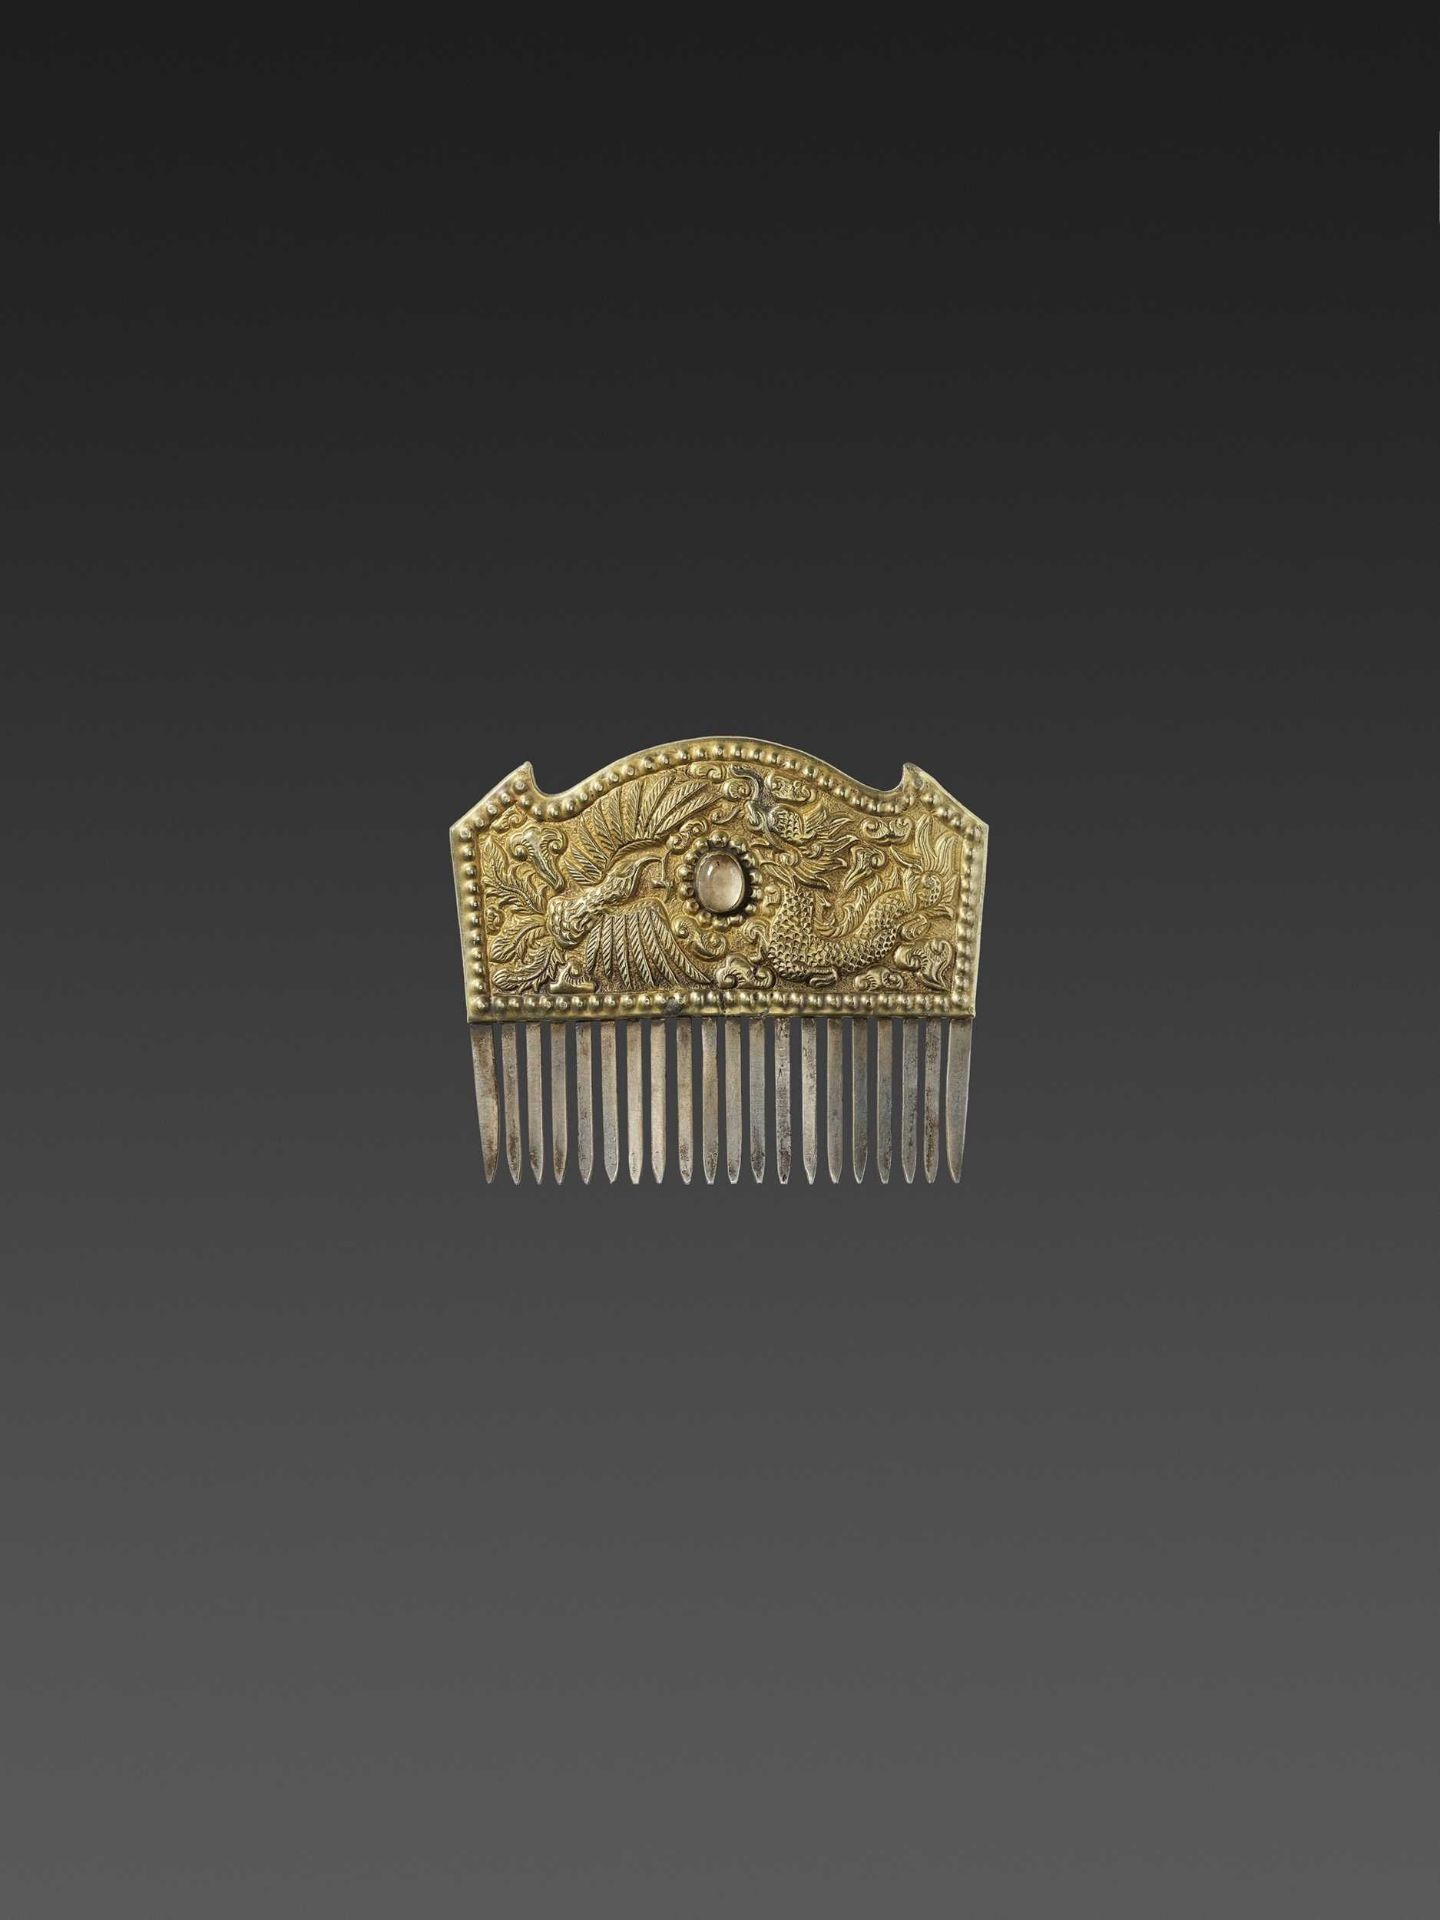 A VIETNAMESE ROCK CRYSTAL-SET GOLD REPOUSSÉ AND SILVER HAIR COMB WITH DRAGON AND PHOENIX